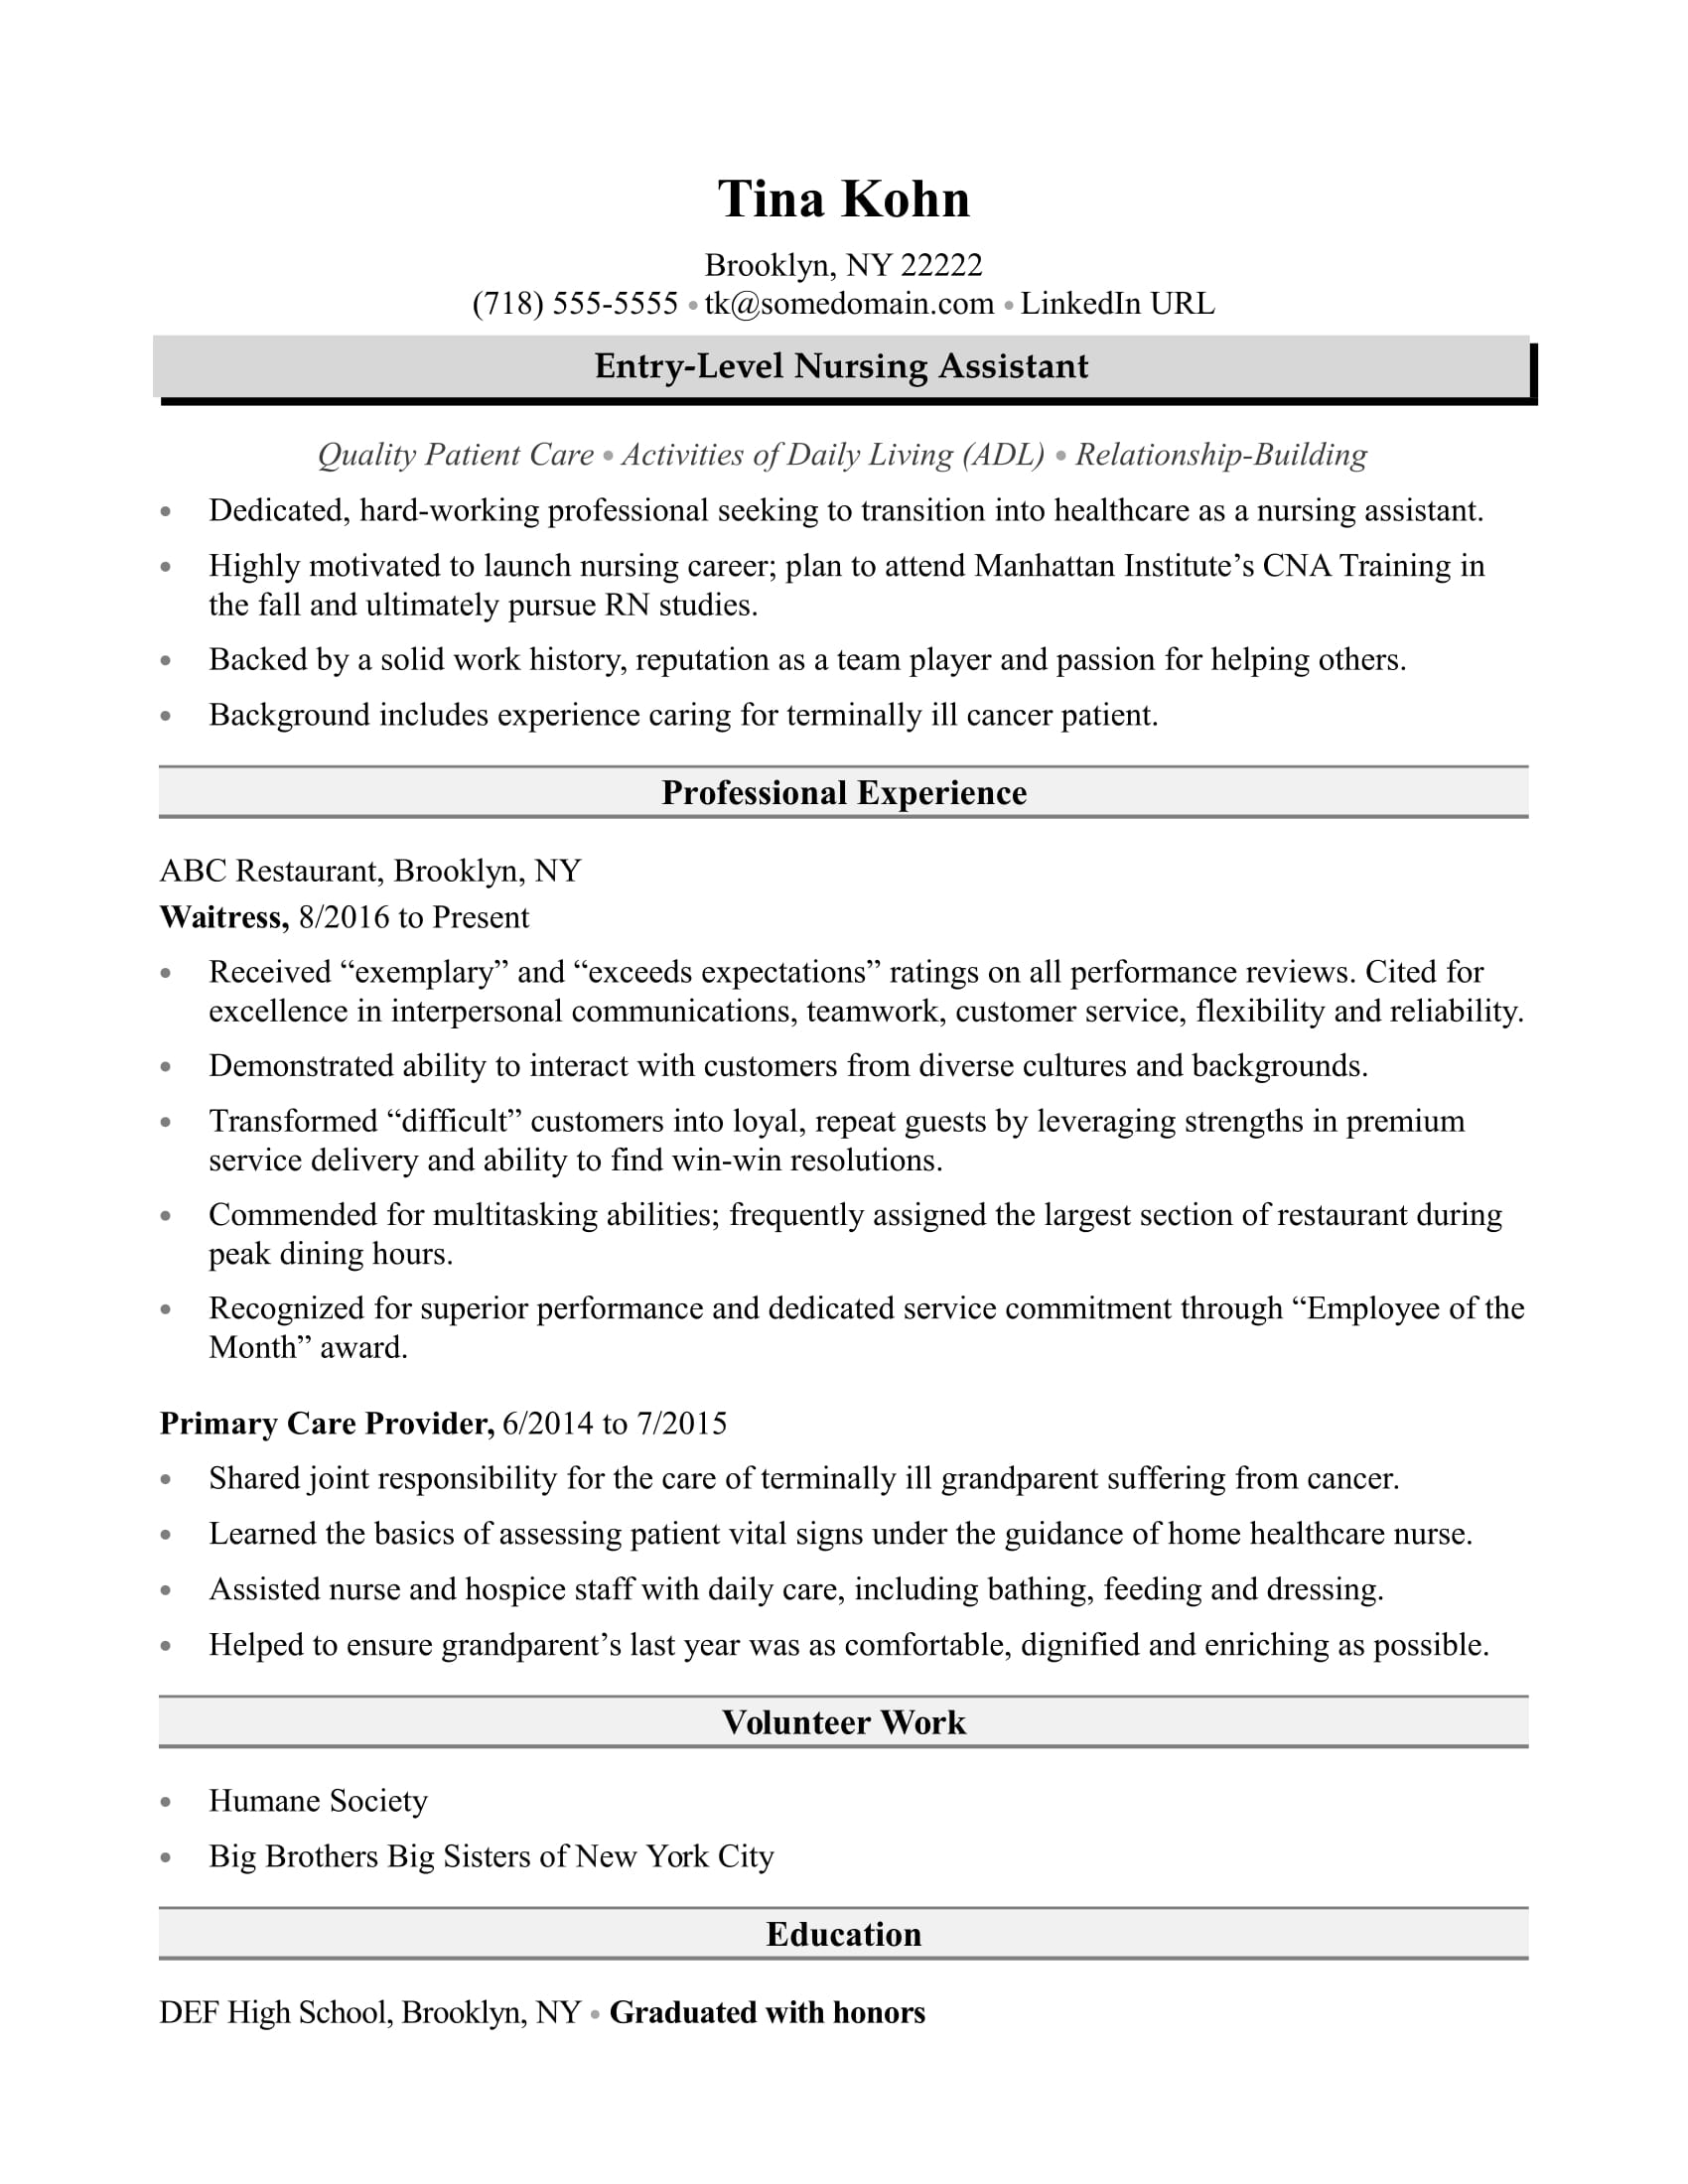 nursing assistant resume sample monster tips for with little experience child development Resume Tips For A Resume With Little Experience